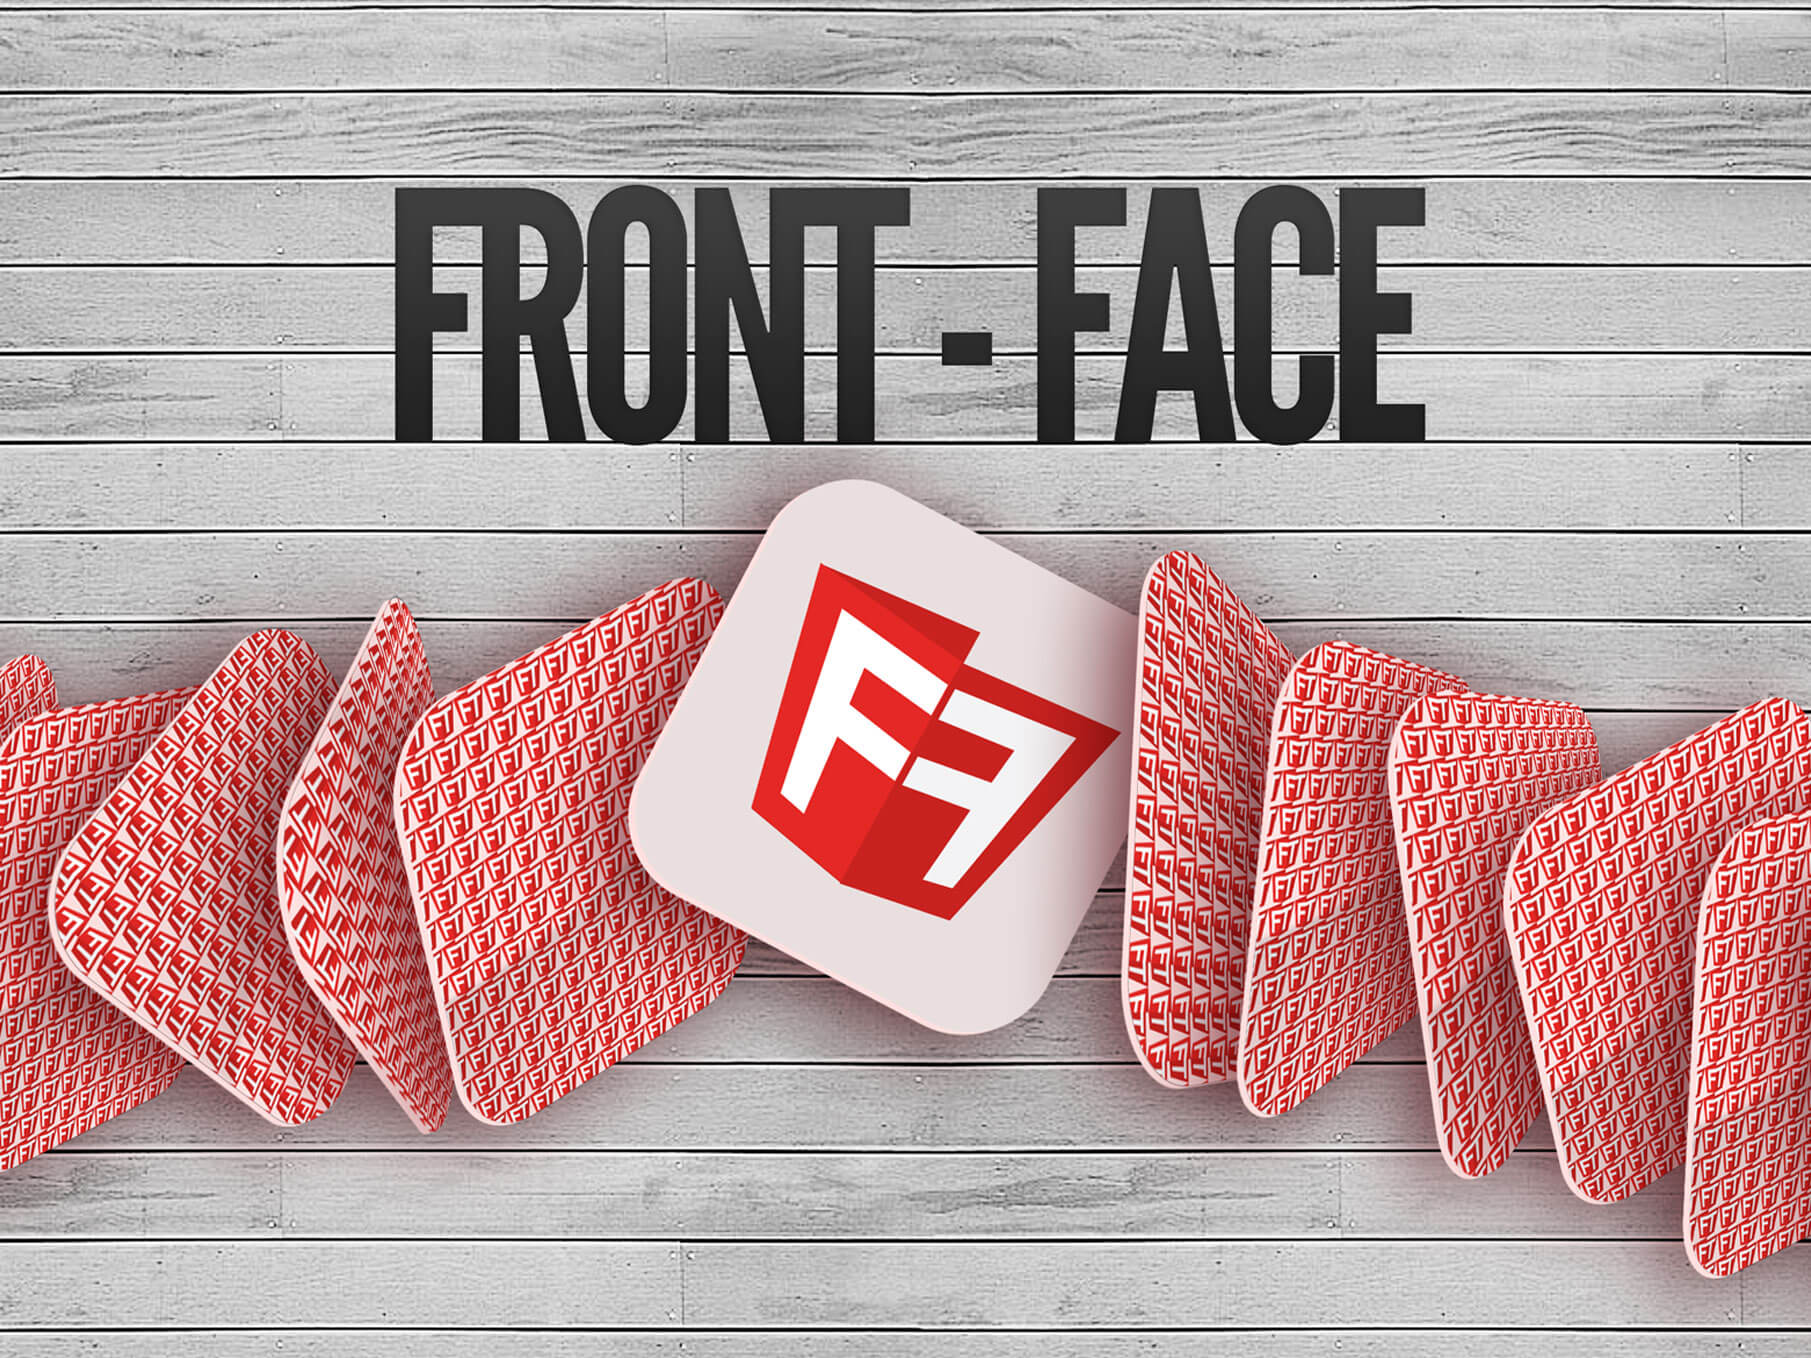 frontface1